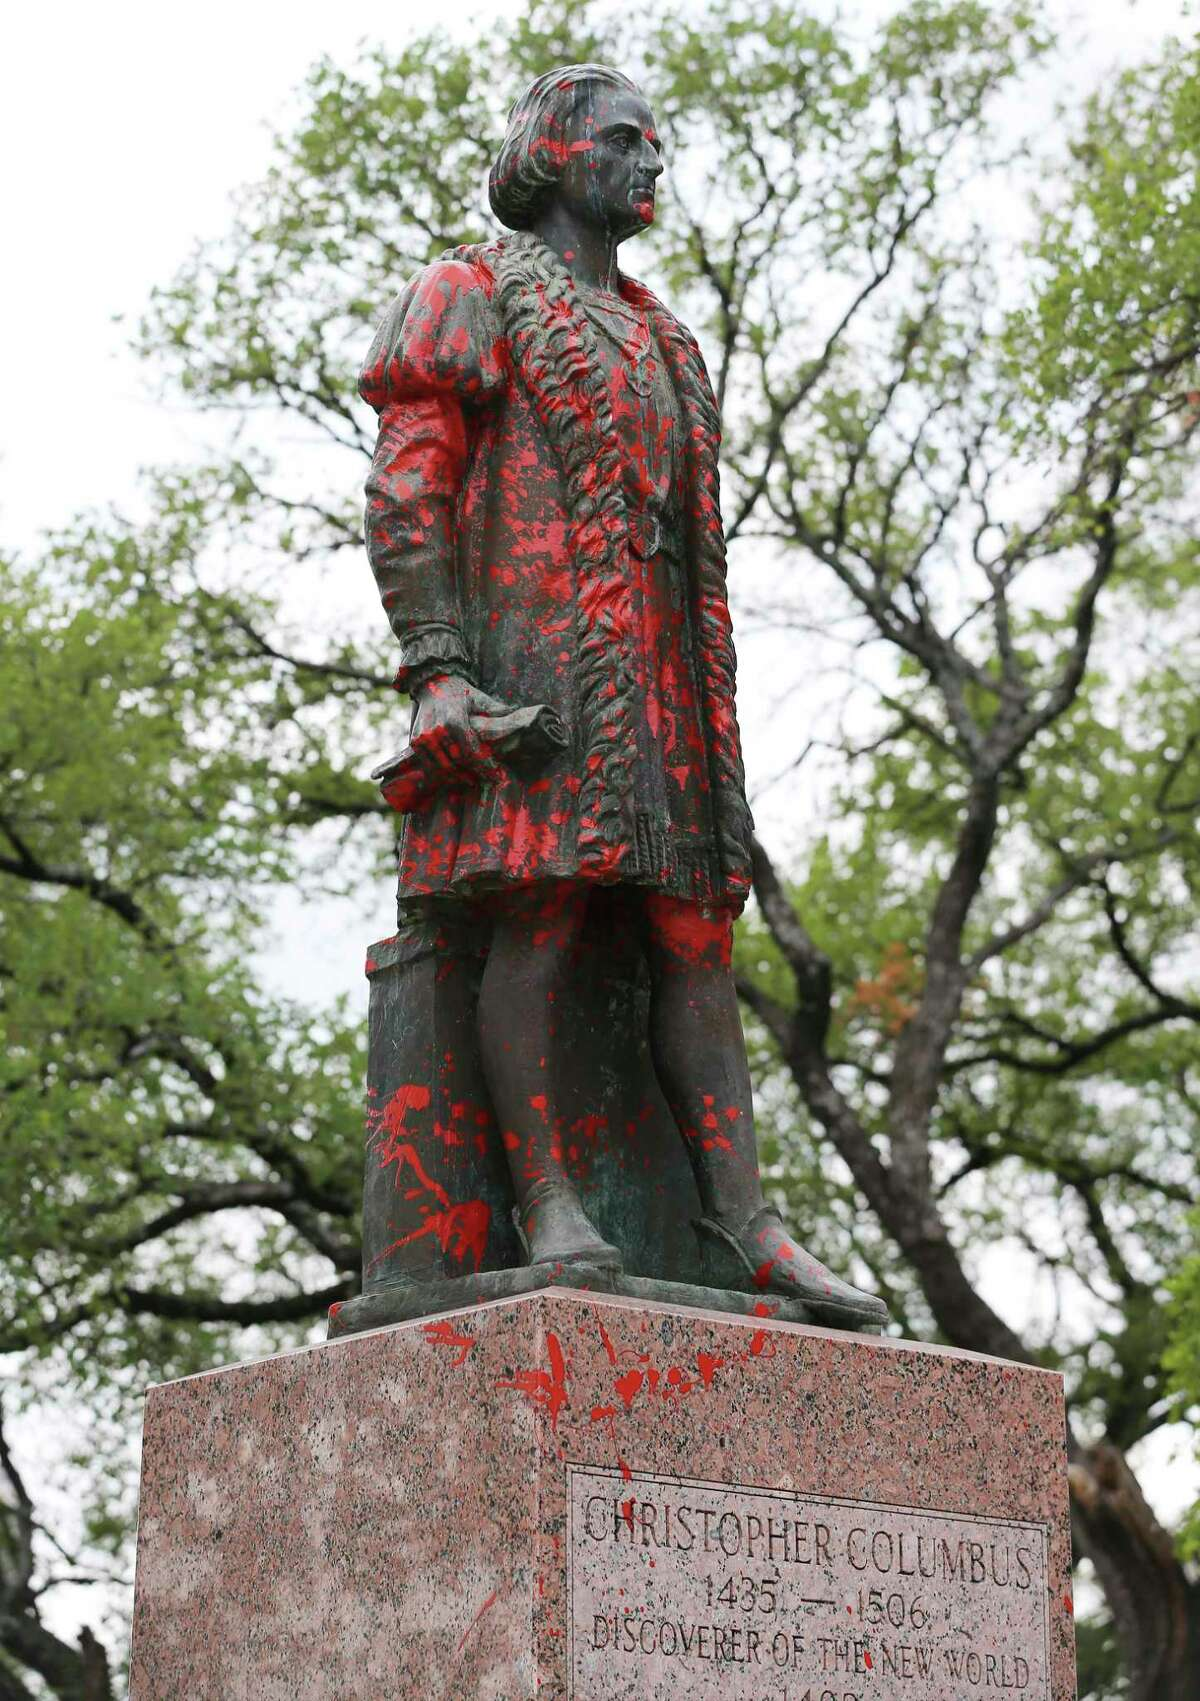 The Christopher Columbus statue located in the Piazza Di Columbo, also called Columbus Park was vandalized with red paint on June 25. The City Council in August will consider a proposal by Councilman Robert Trevino to give it back to the Christopher Columbus Society, which donated it in 1957, and to rename the park.